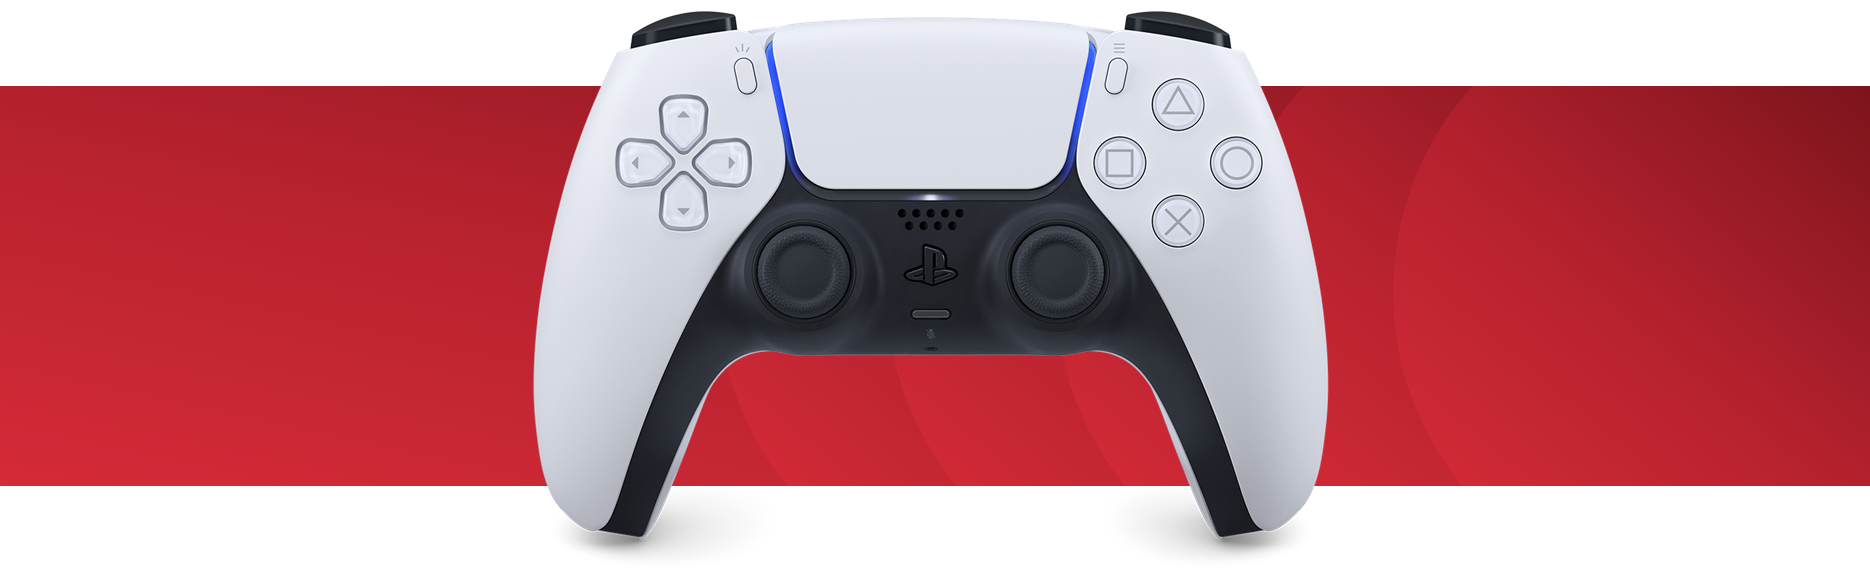 In-game advertising - console